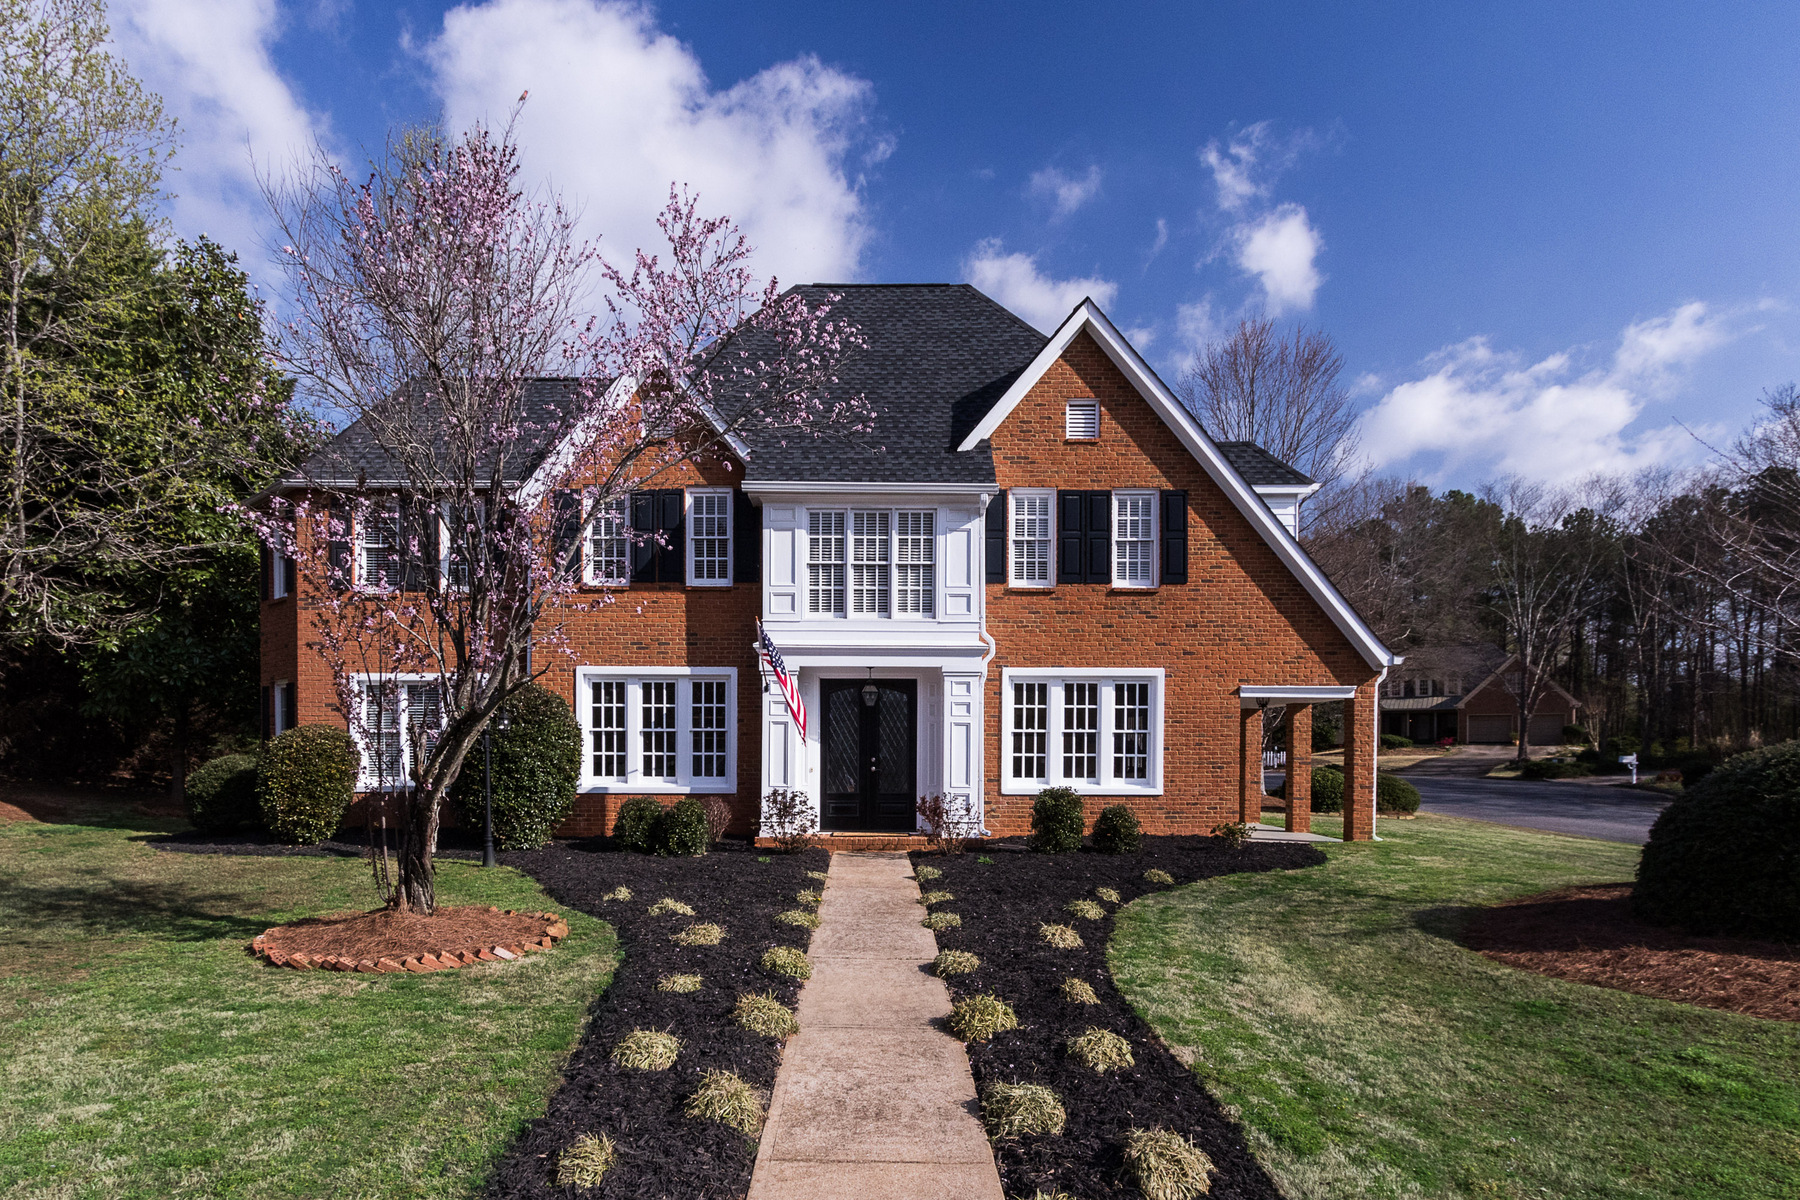 Casa Unifamiliar por un Venta en Gorgeous Updated Home Near Downtown Alpharetta 5225 Hunters Oaks Drive Alpharetta, Georgia, 30009 Estados Unidos